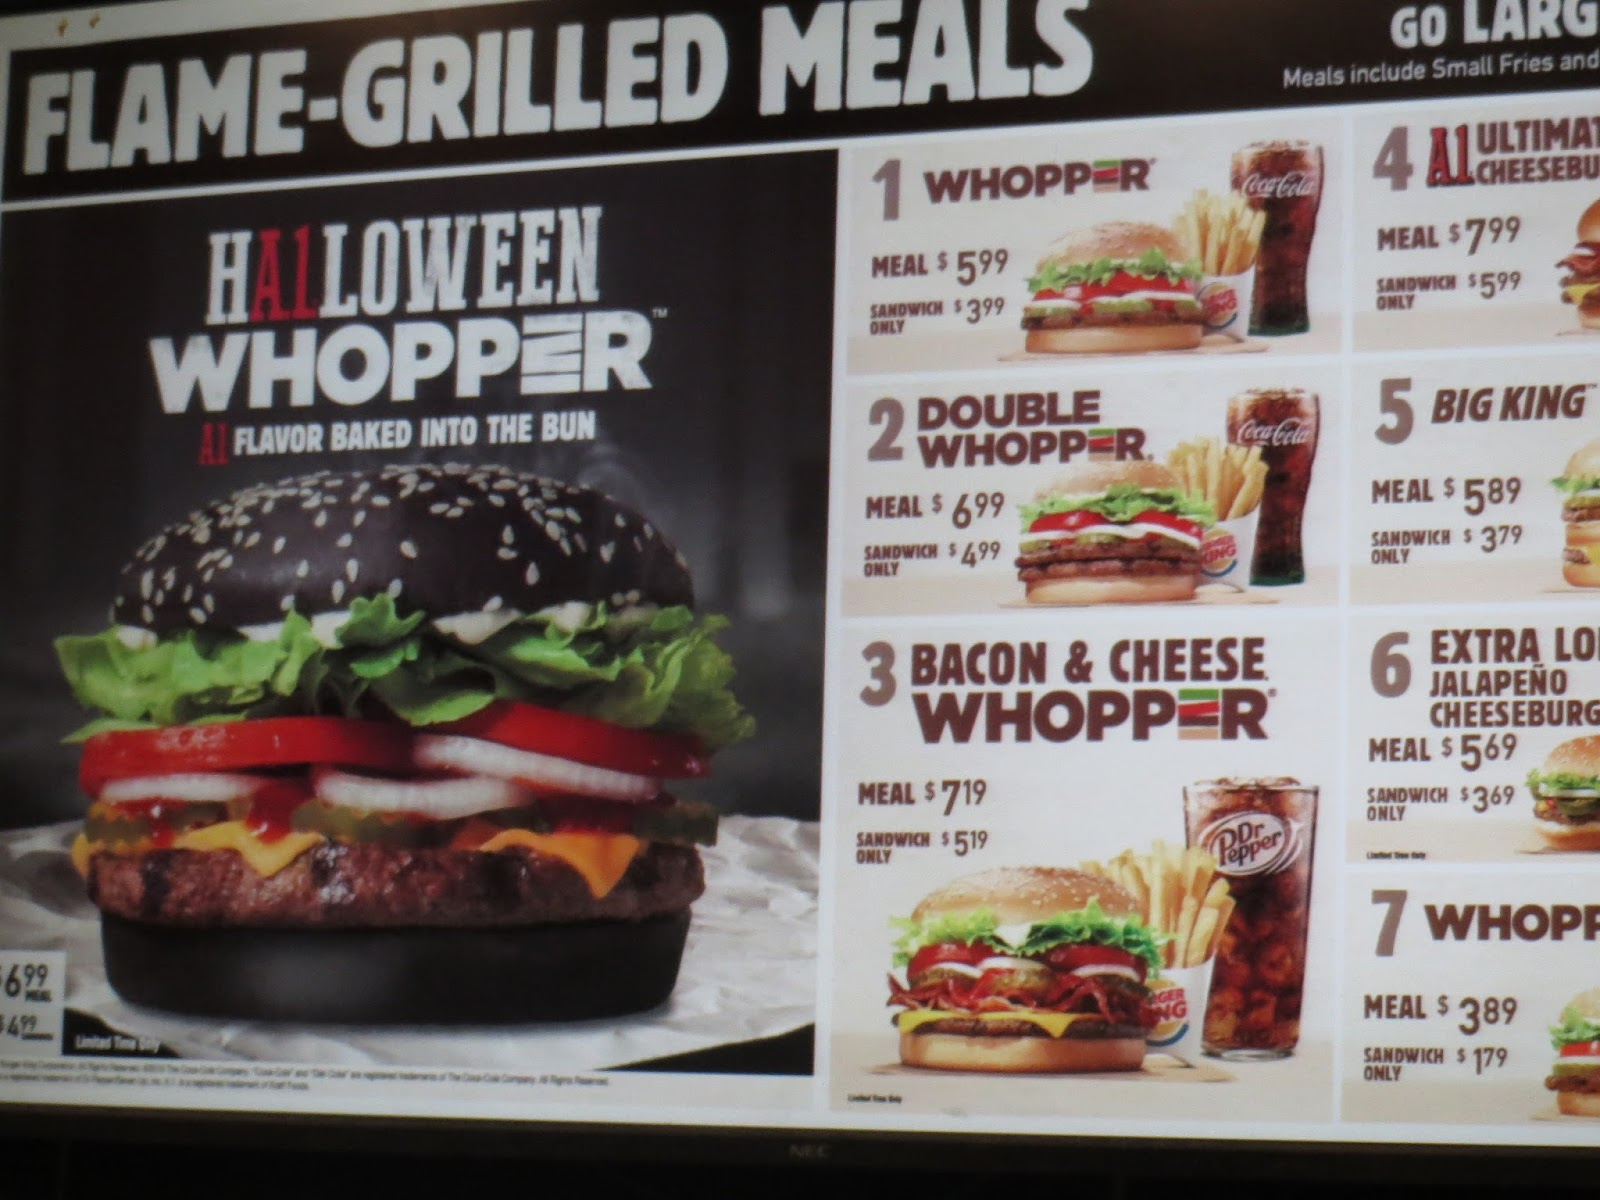 THE INTERNET IS IN AMERICA: The Burger King Halloween Whopper!